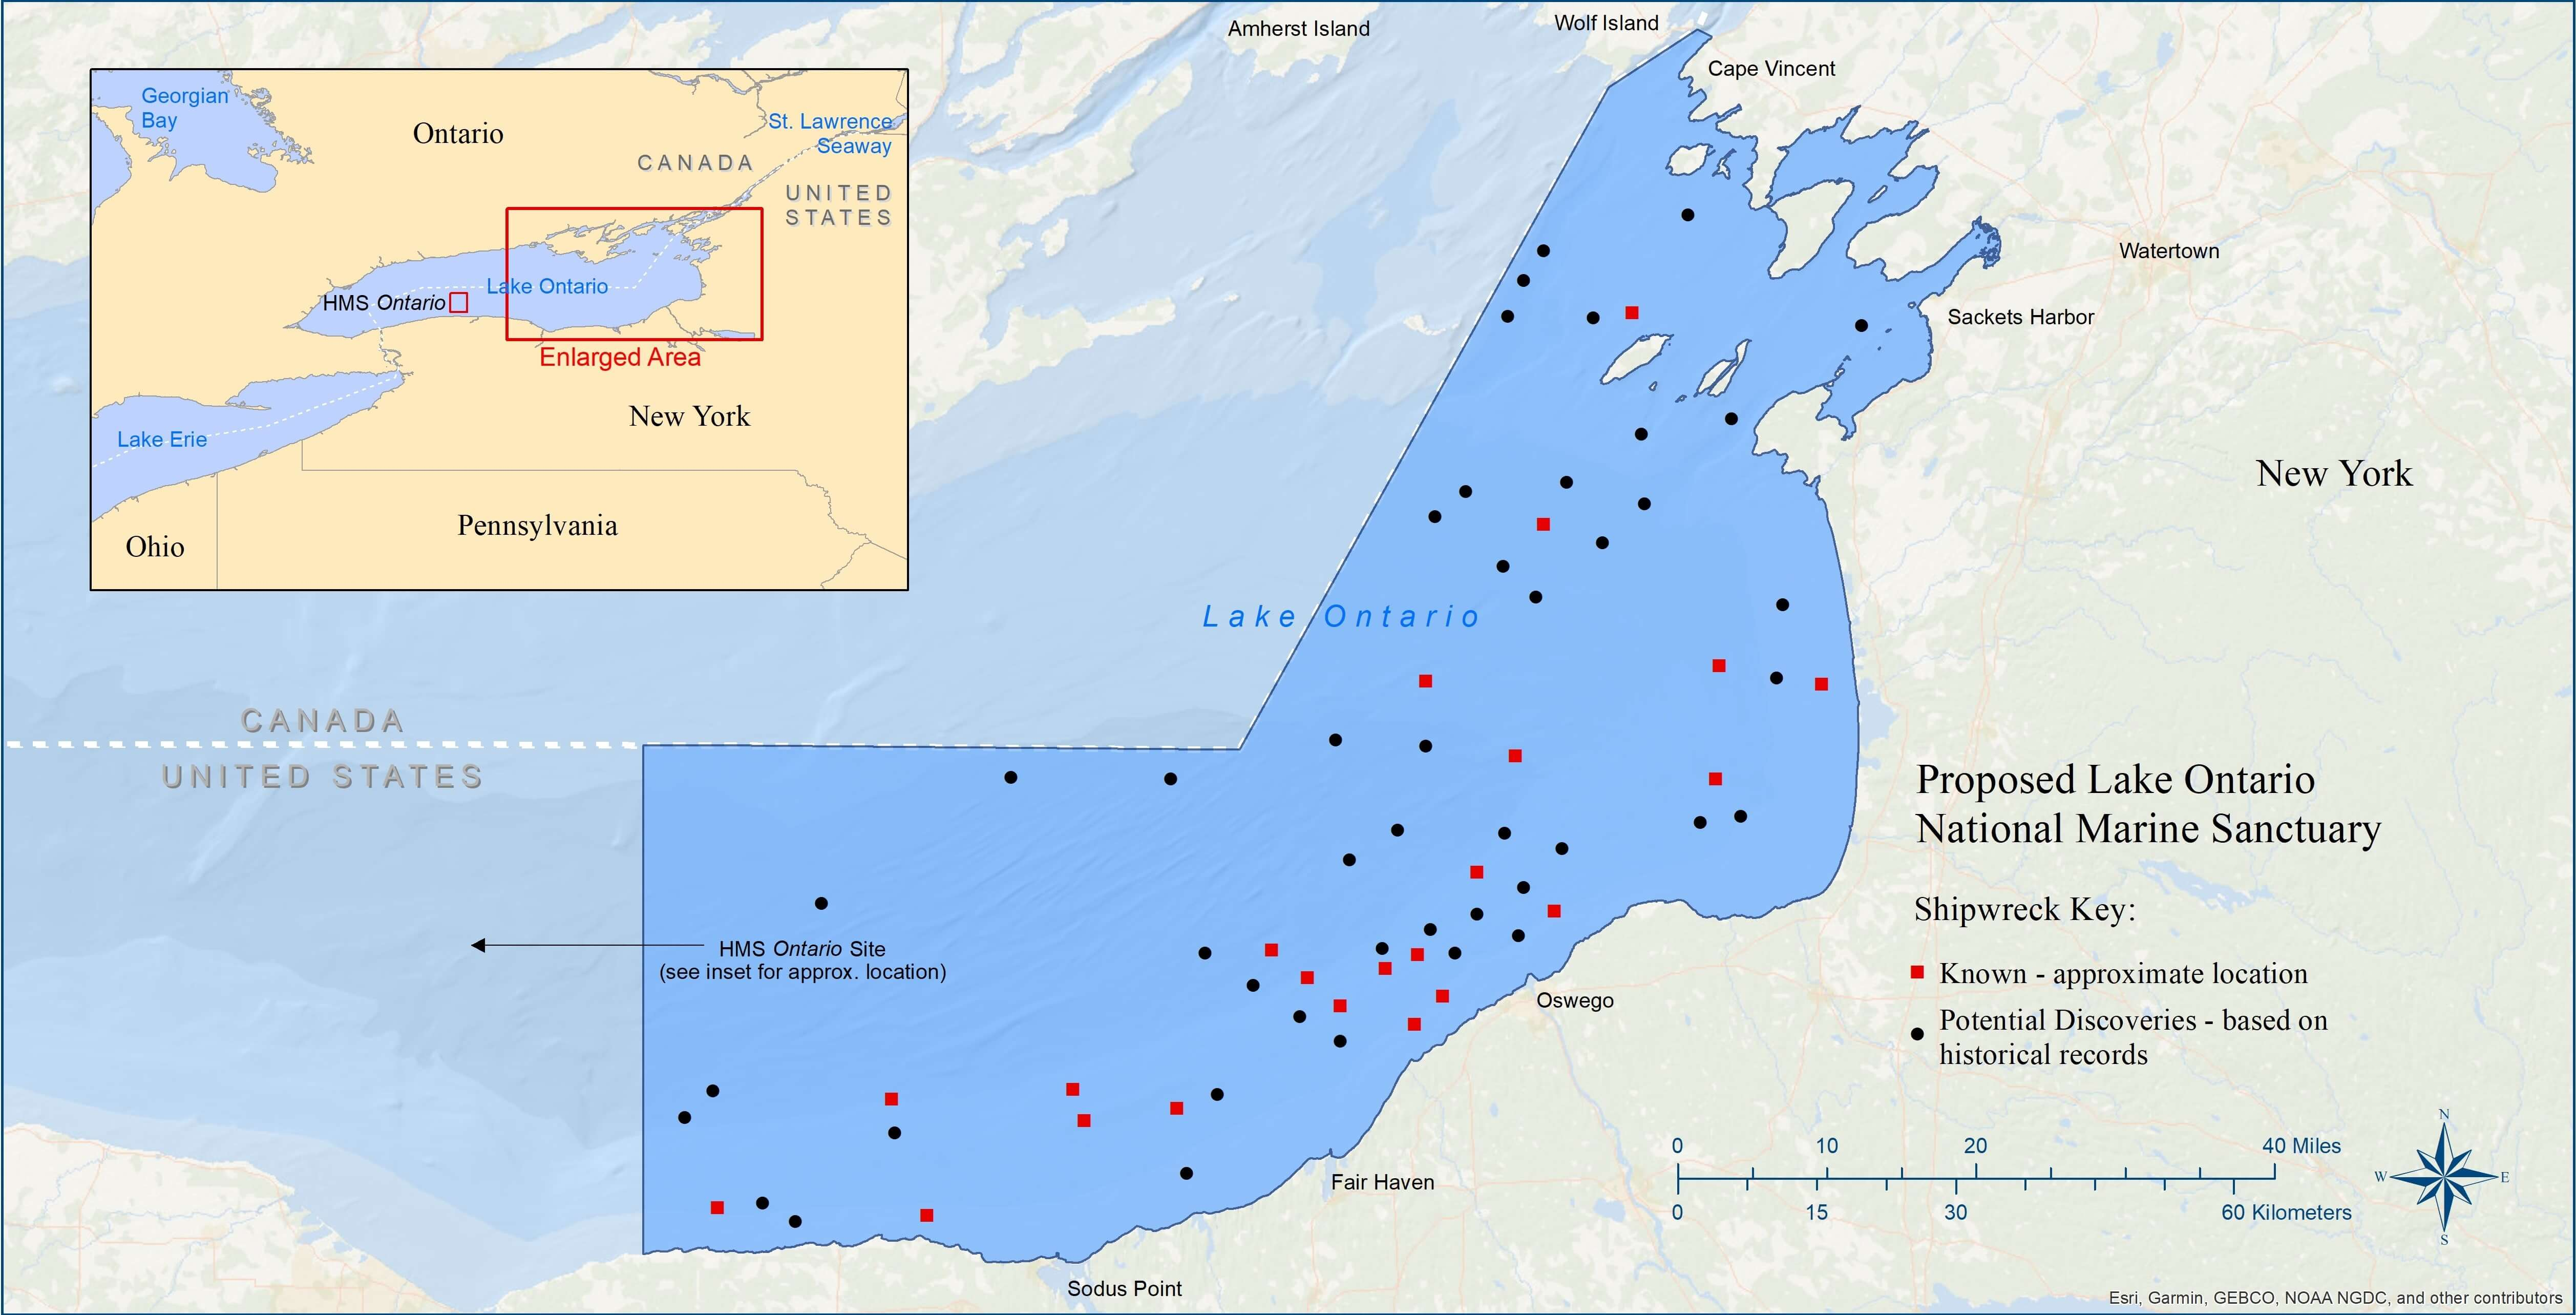 Public Comments Sought For Possible Lake Ontario National Marine Sanctuary